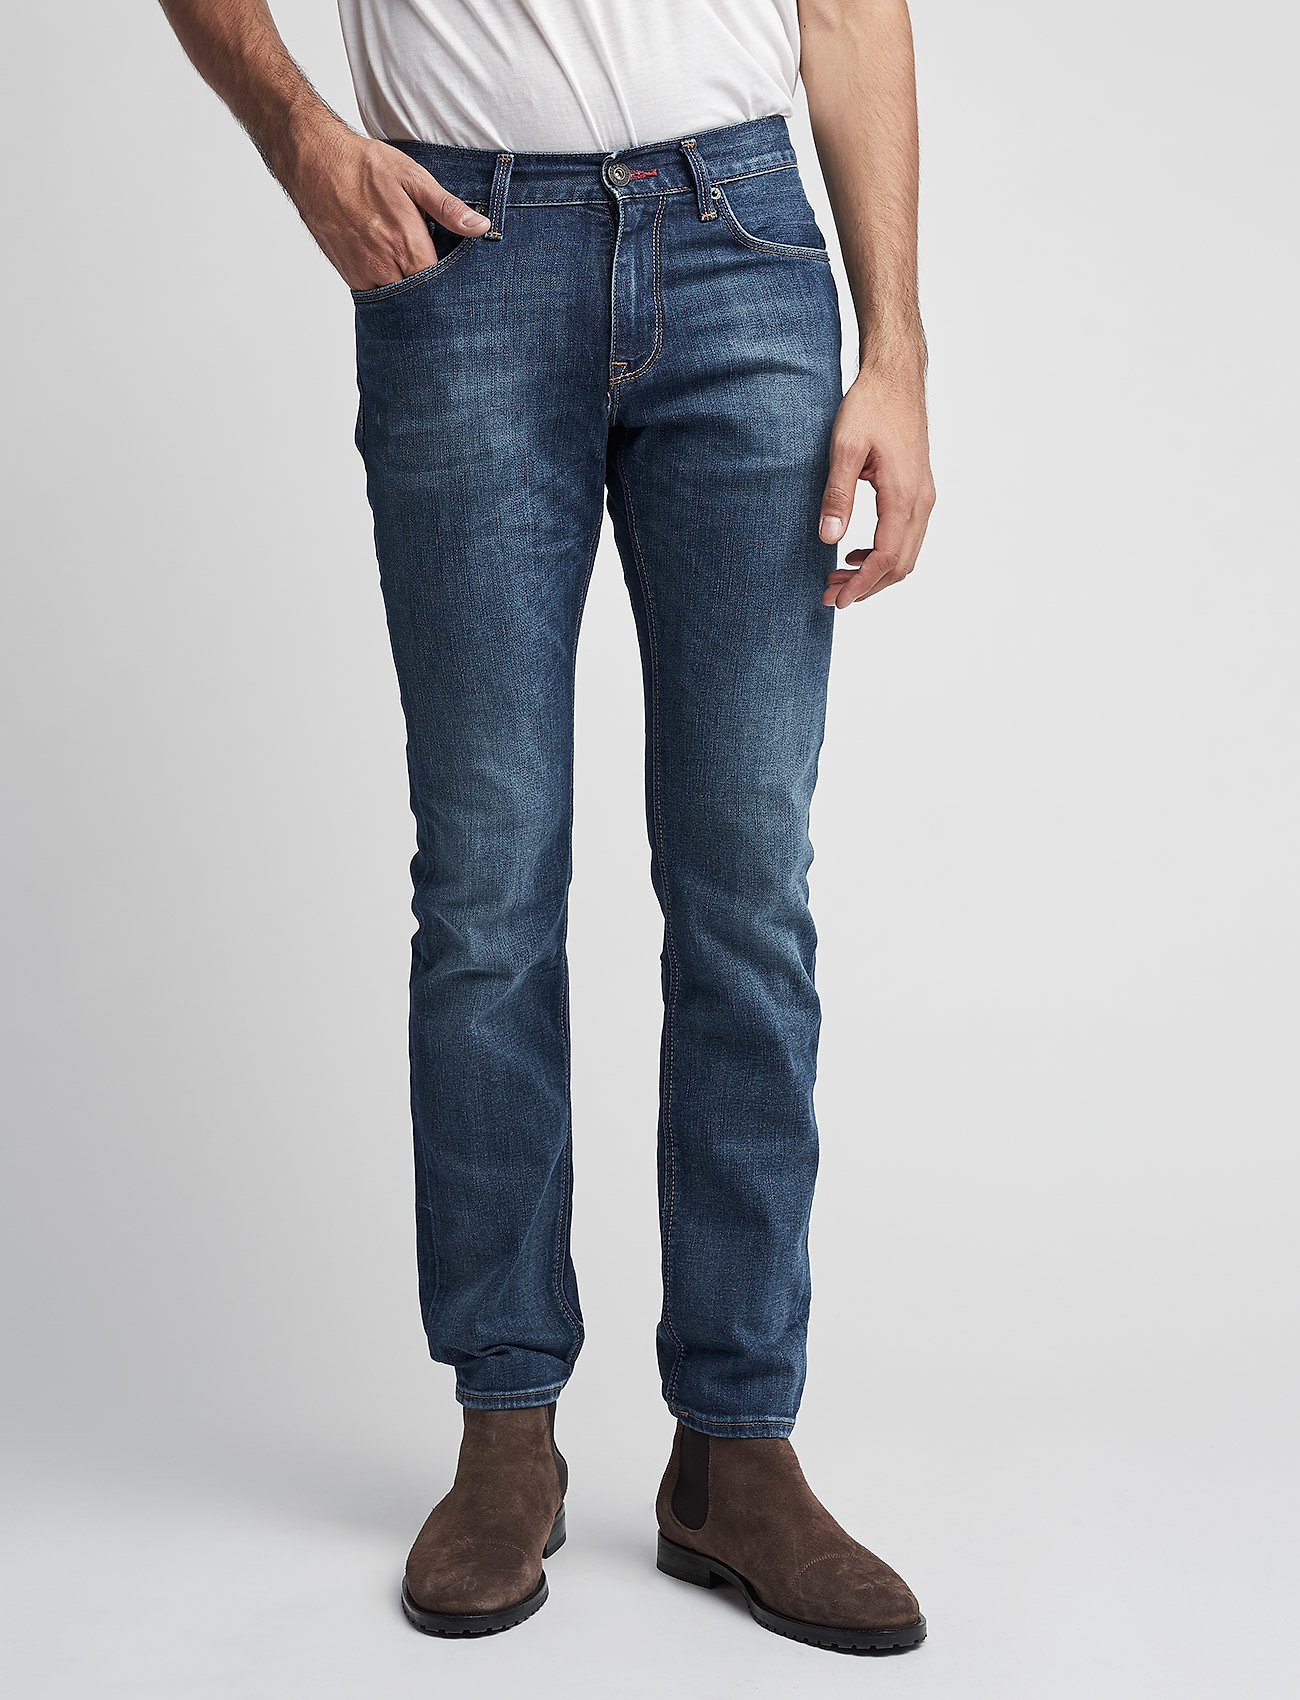 Tommy Hilfiger - DENTON B MIDDLE BLUE STRETCH - slim jeans - middle blue - 0